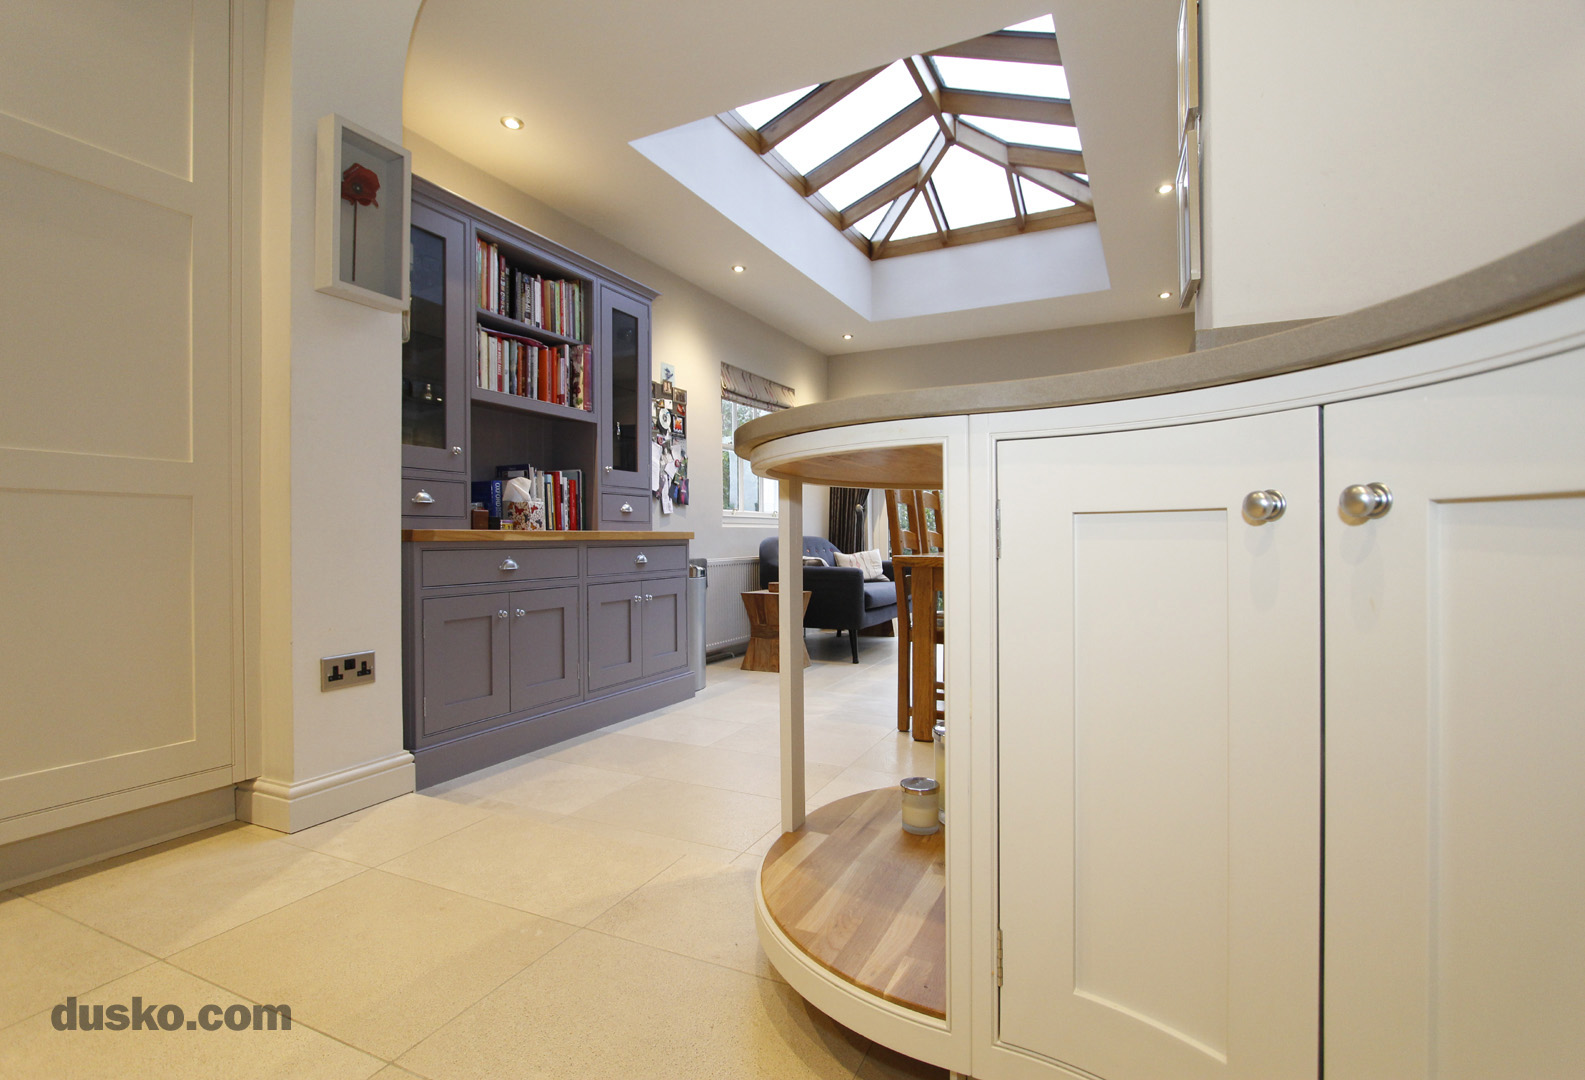 In Frame Kitchen in Bowdon, Cheshire Kitchen Dining Area